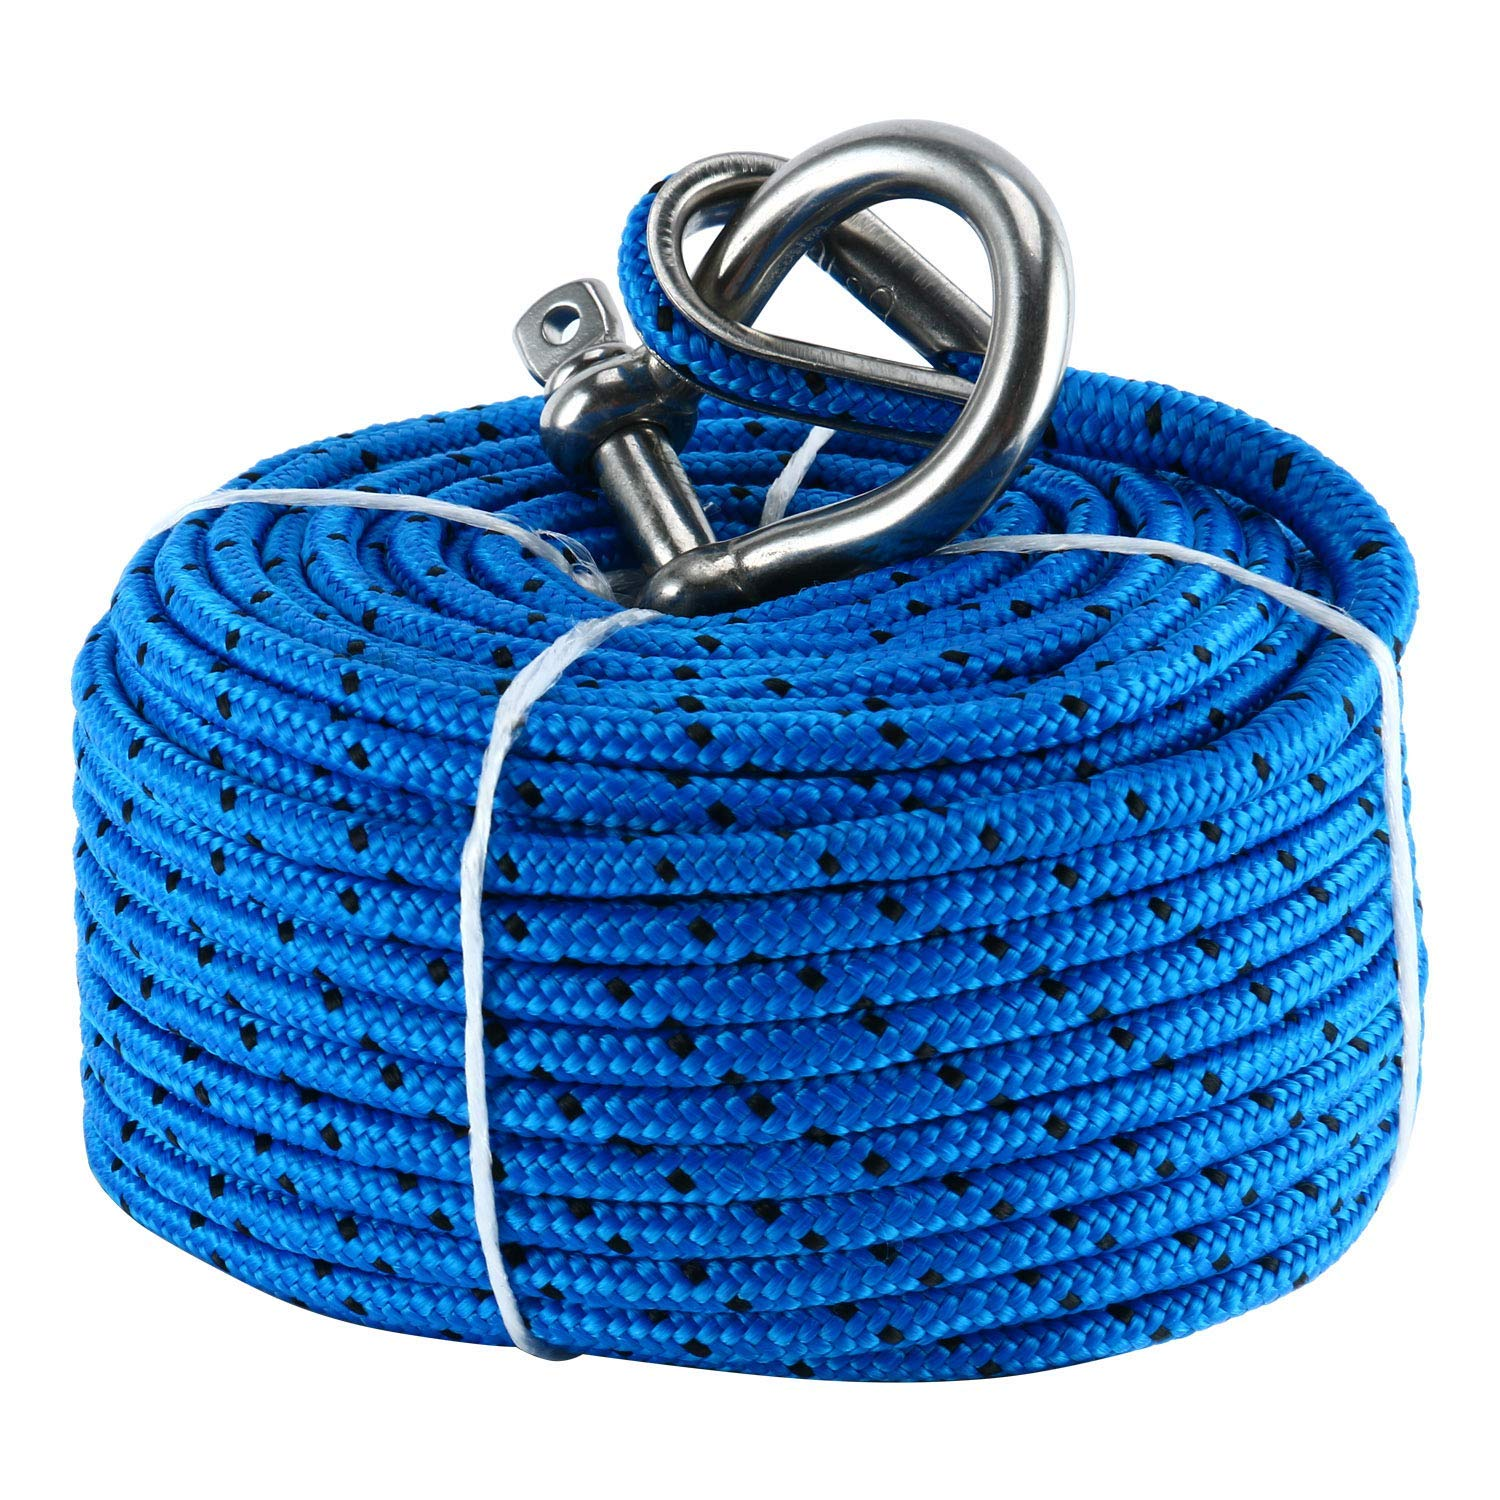 BLUE PVC coated galvanized steel CABLE strand wire rope metal sailing boat winch